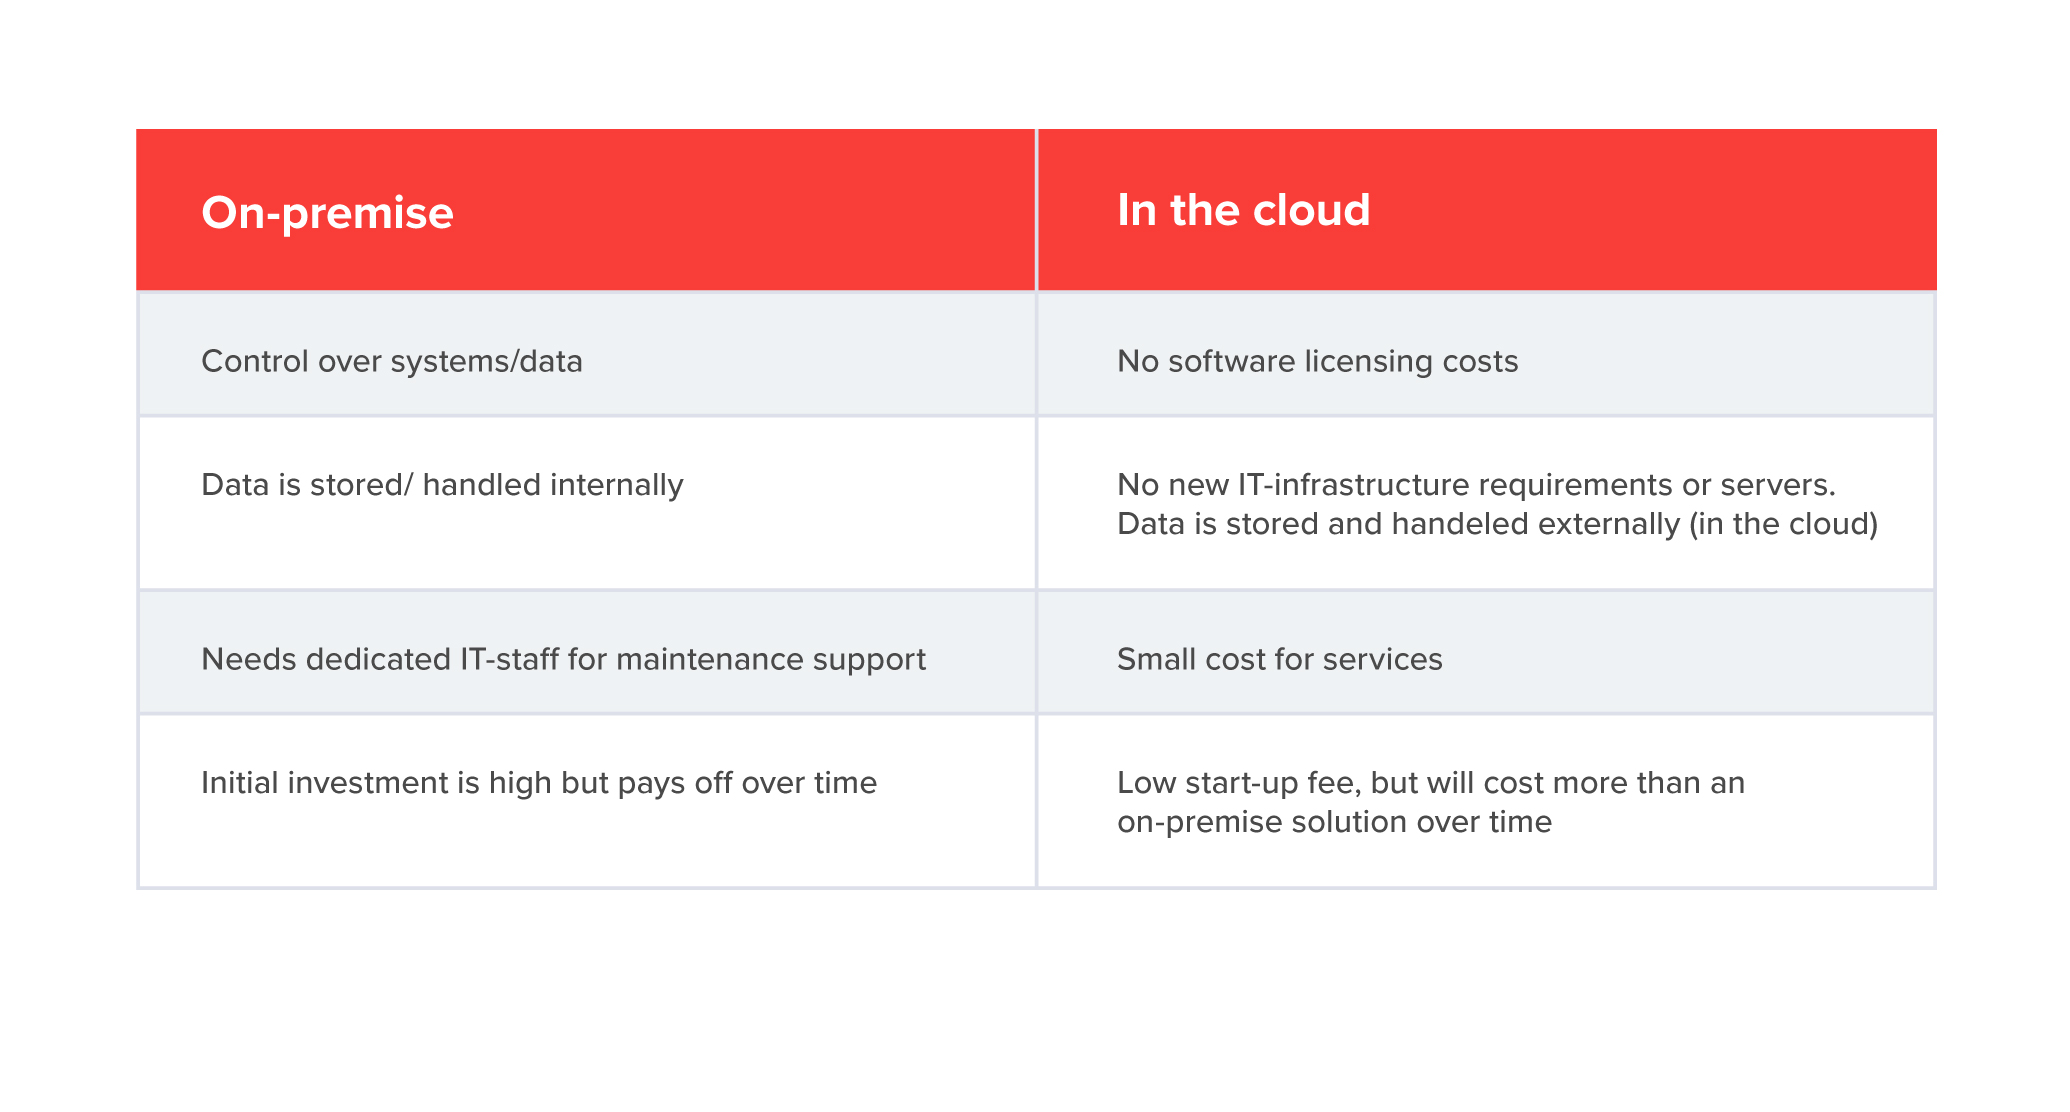 How cloud based CRM compares to on-premise CRM